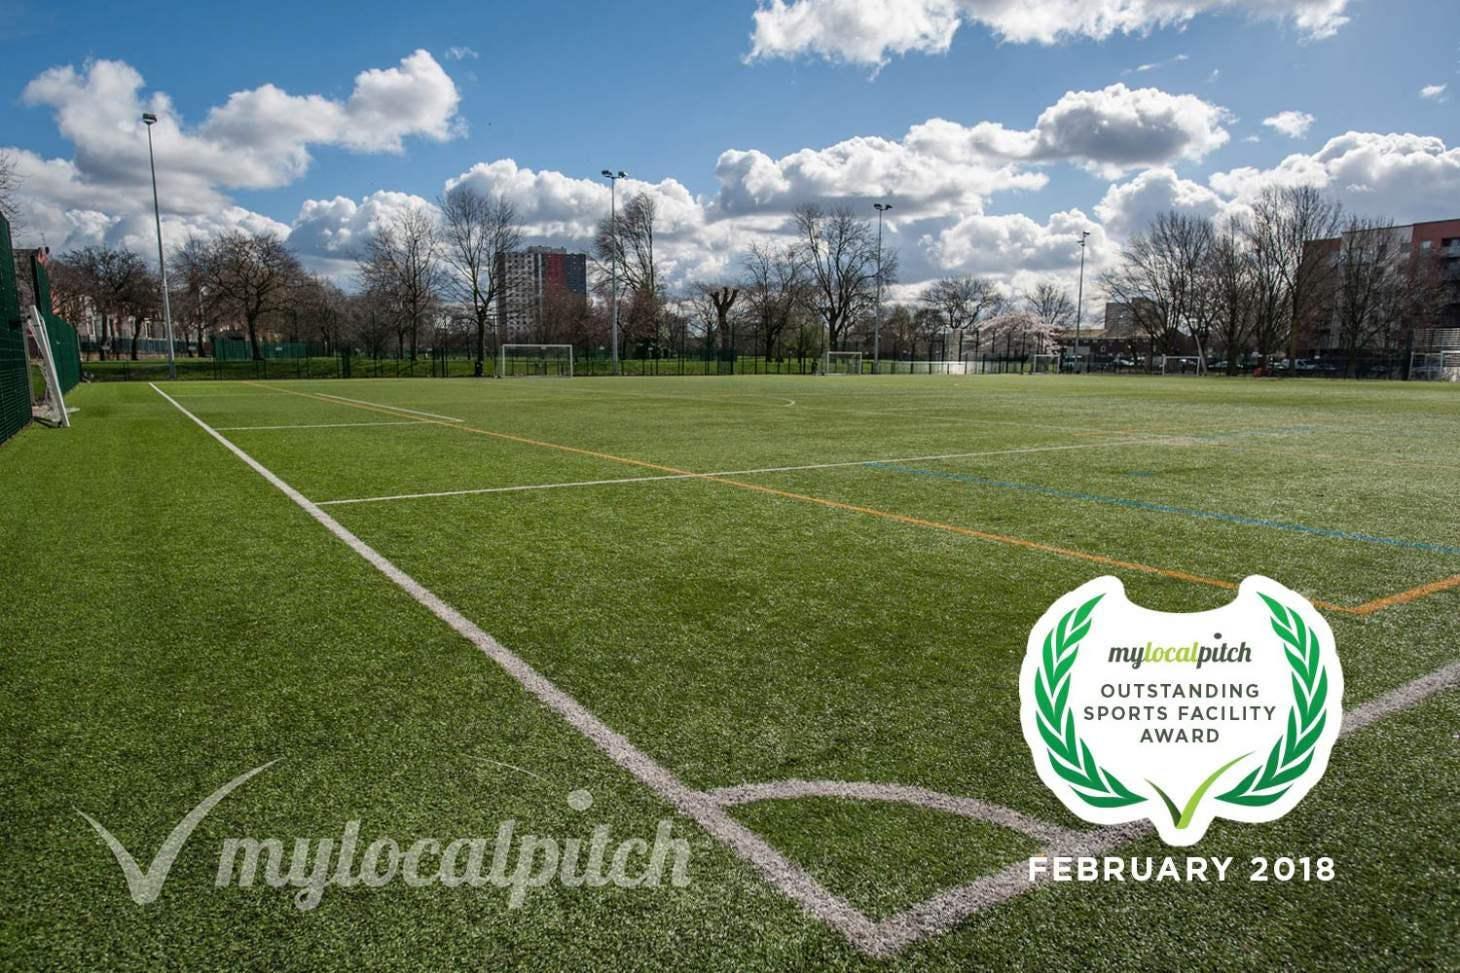 Ordsall Leisure Centre Outdoor | Astroturf hockey pitch